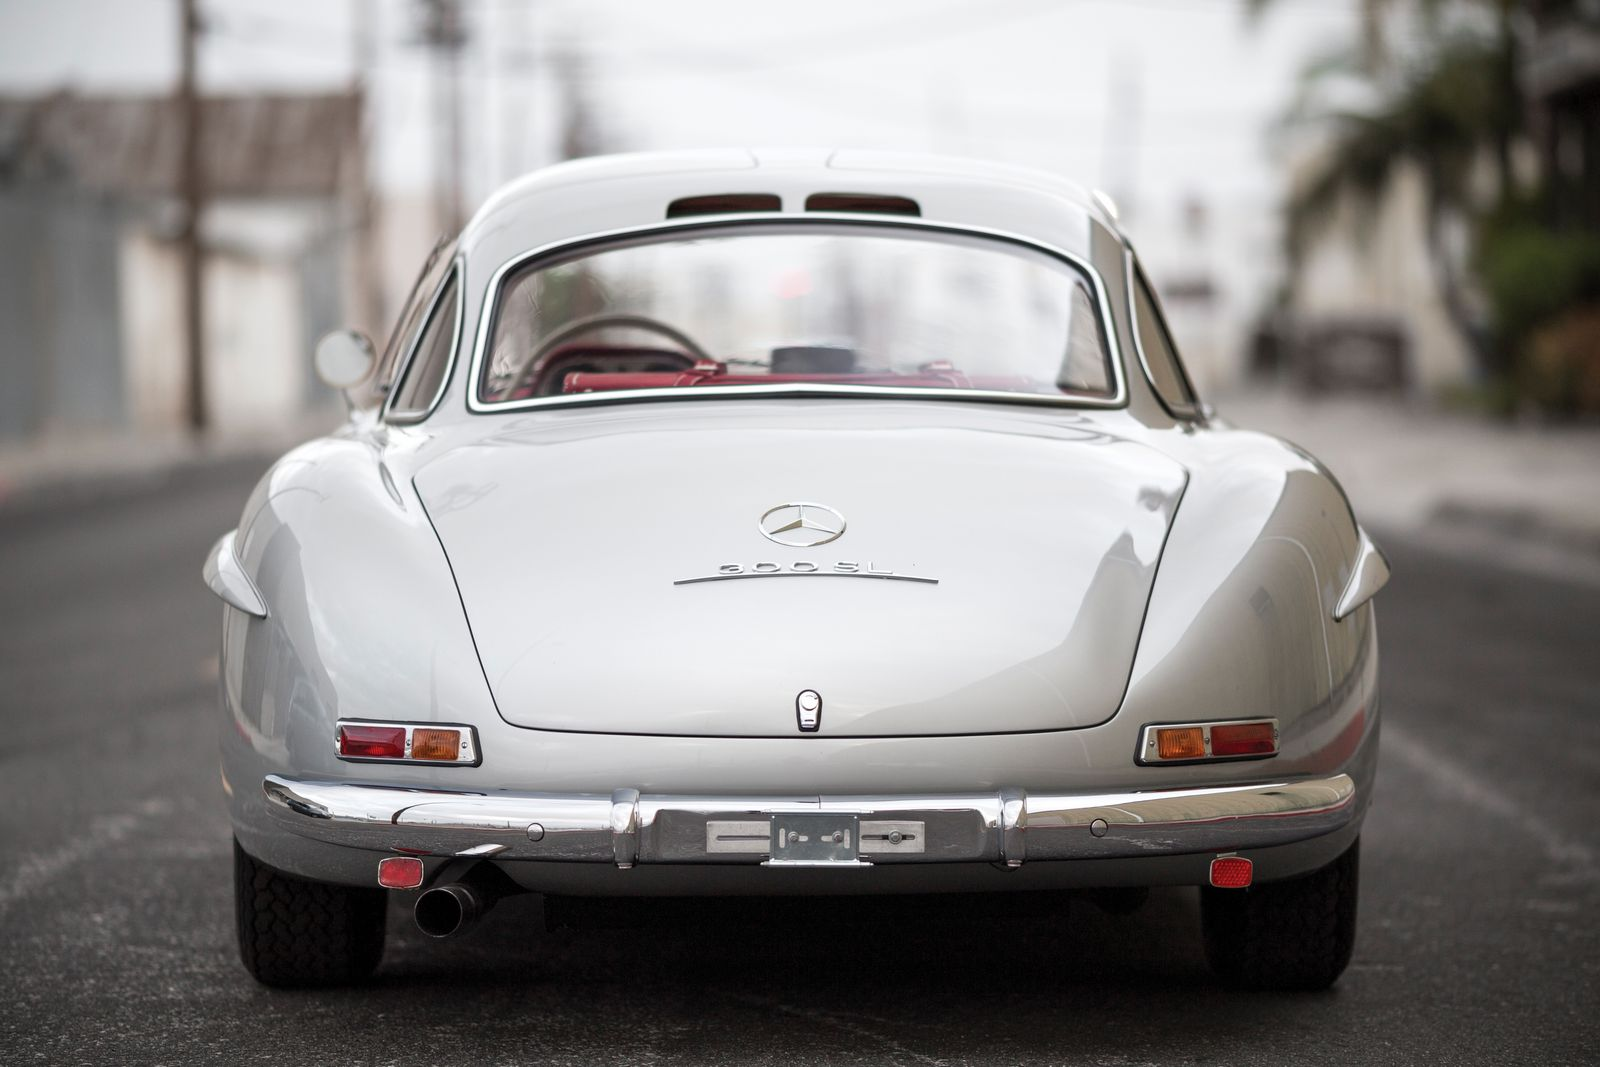 Mercedes-Benz 300SL Alloy Gullwing Heads To AUCTION! It Will Be Sold For At Least $5.5 M 12